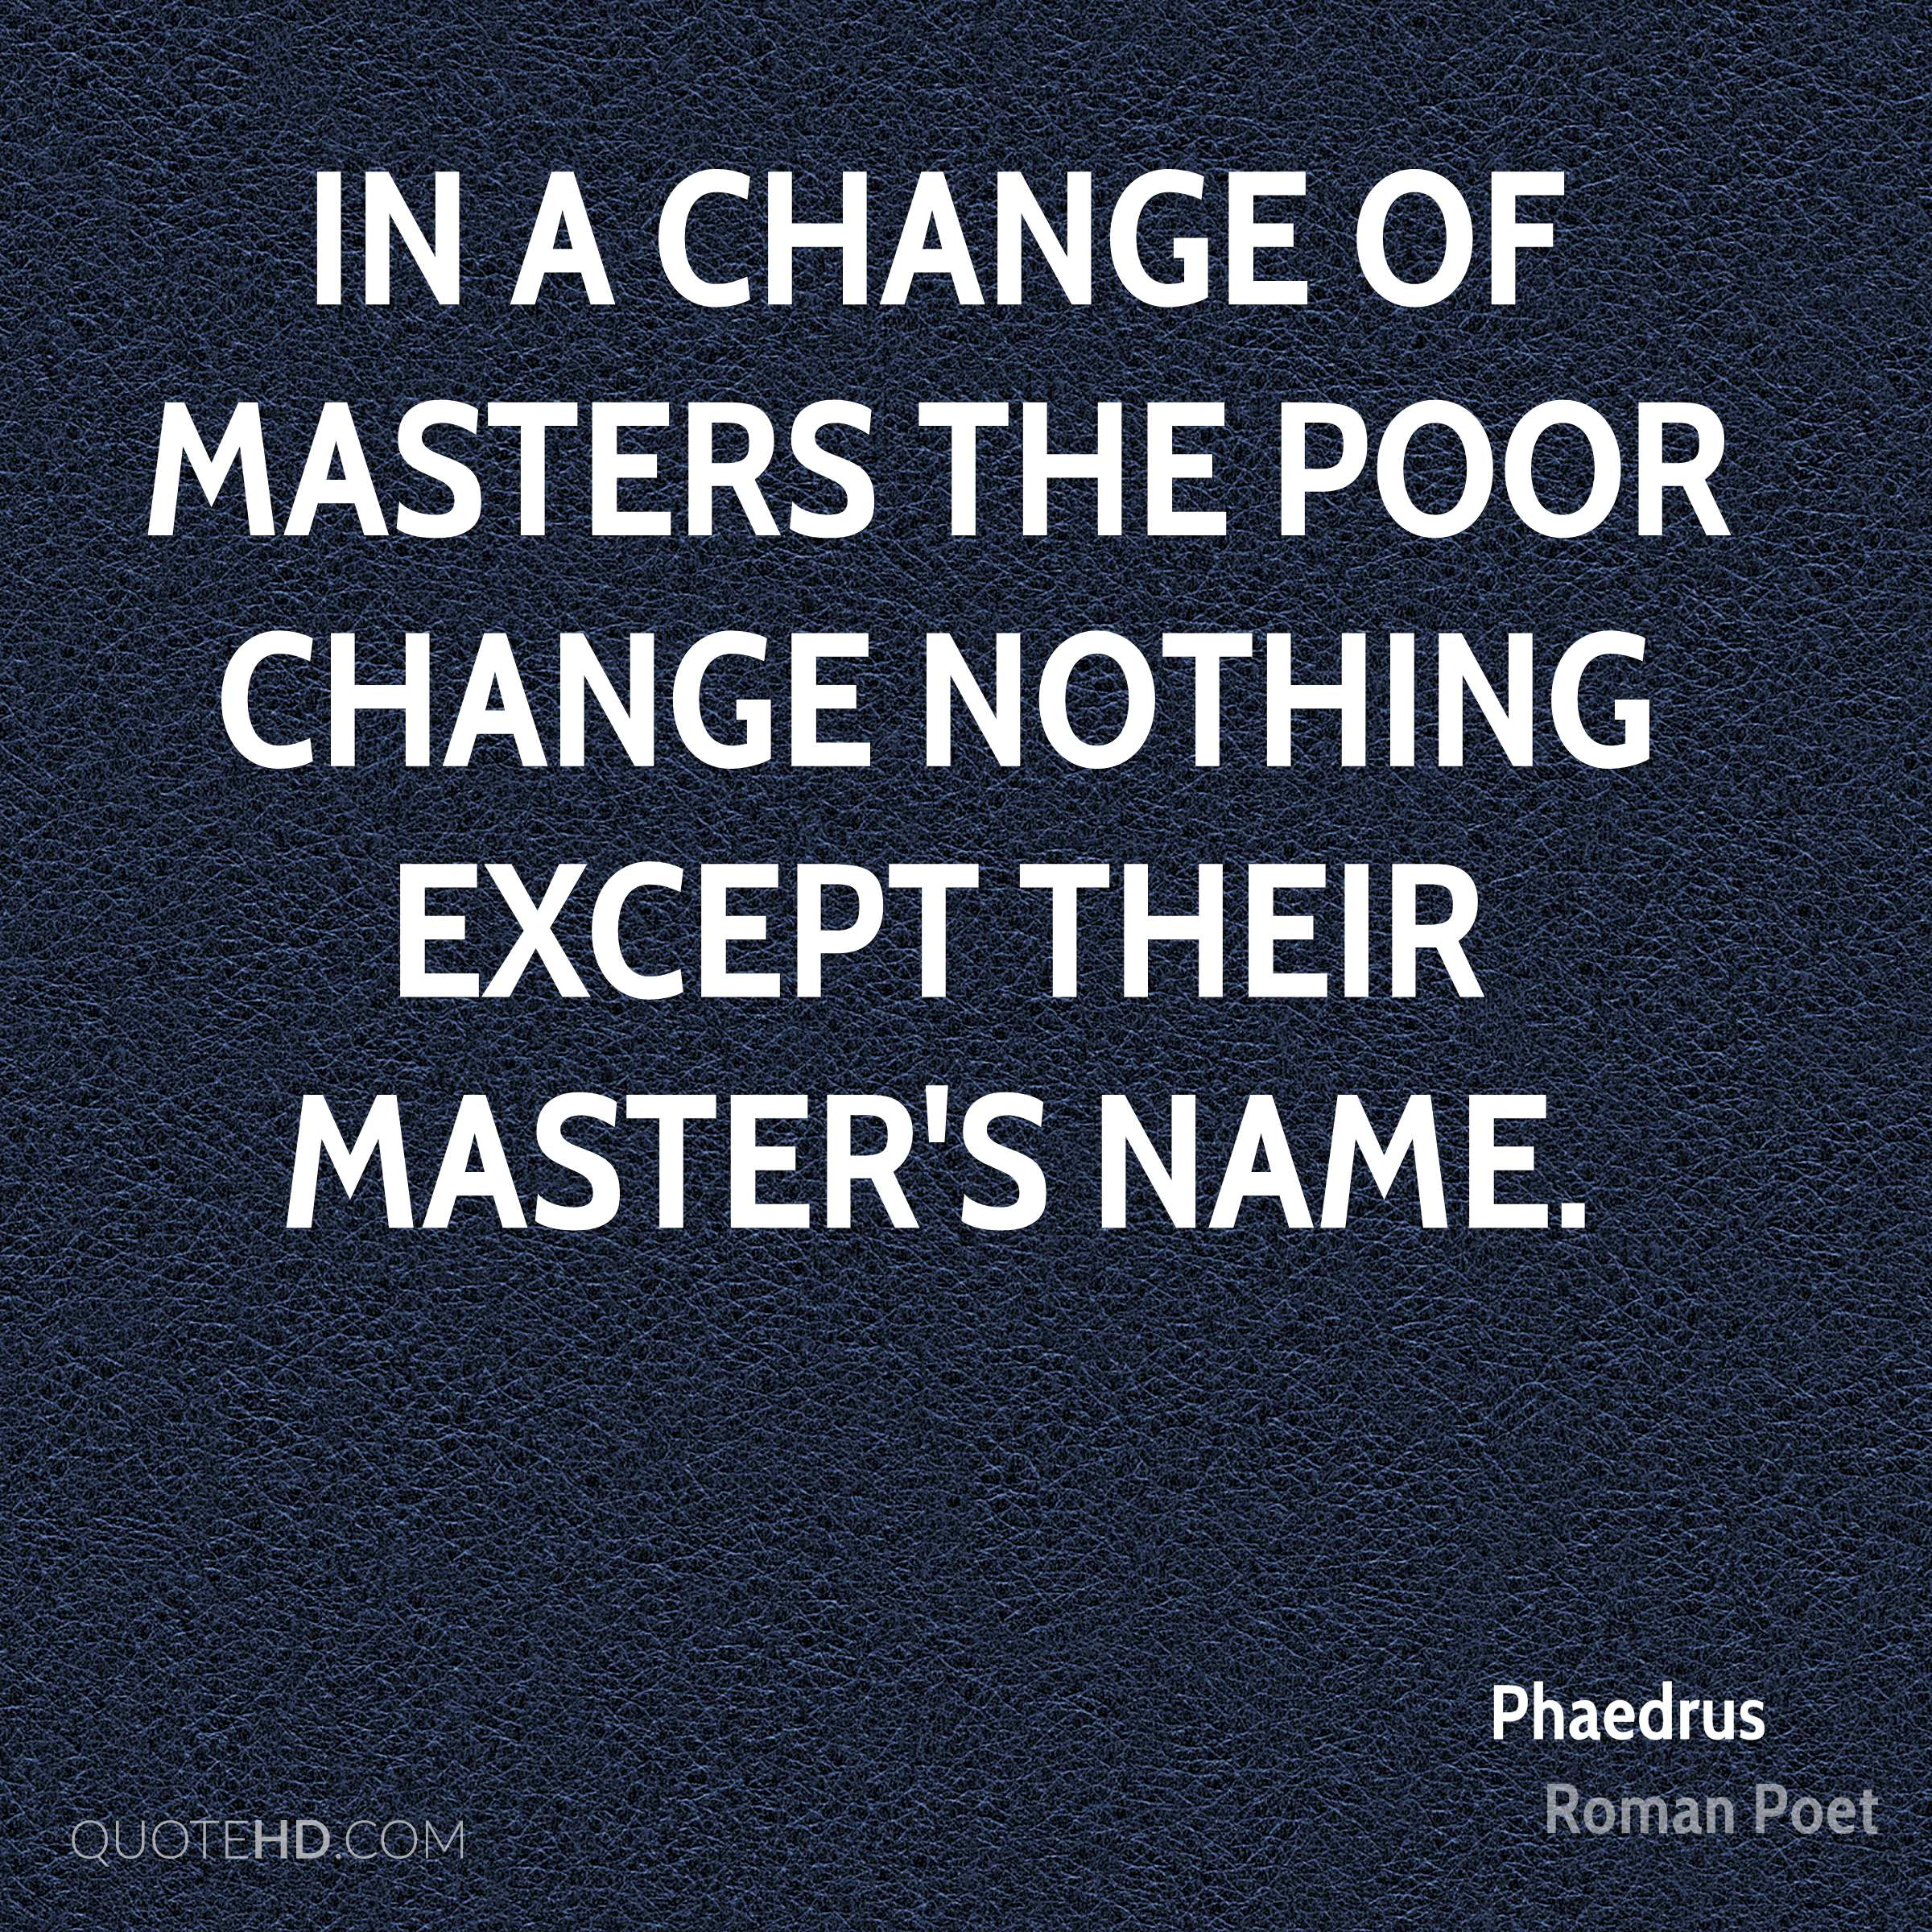 In a change of masters the poor change nothing except their master's name.